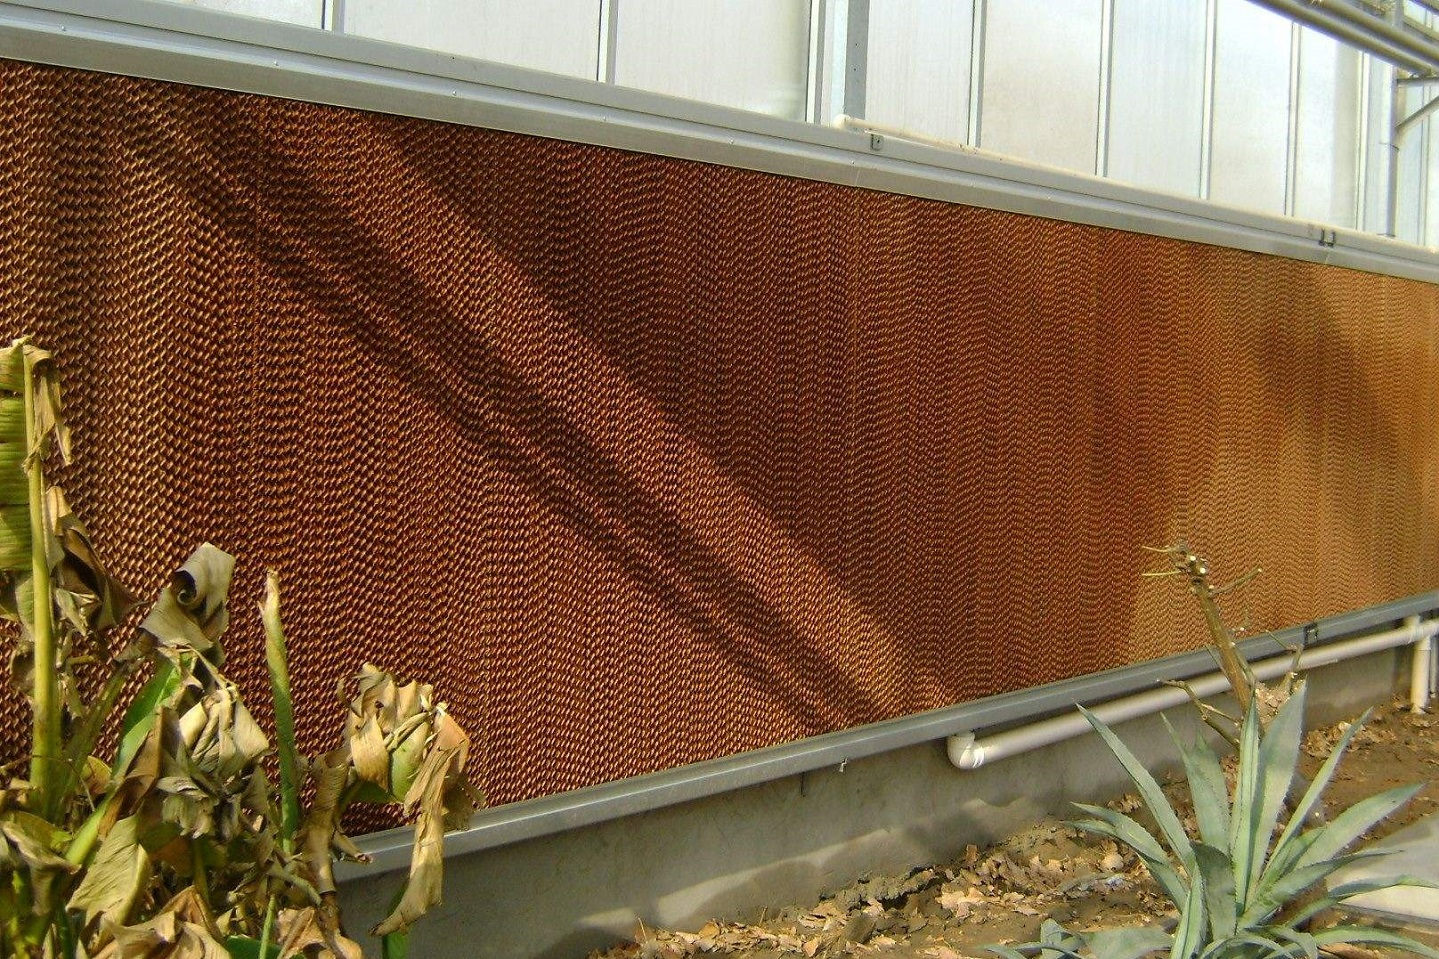 Greenhouse Water Evaporative Cooling System